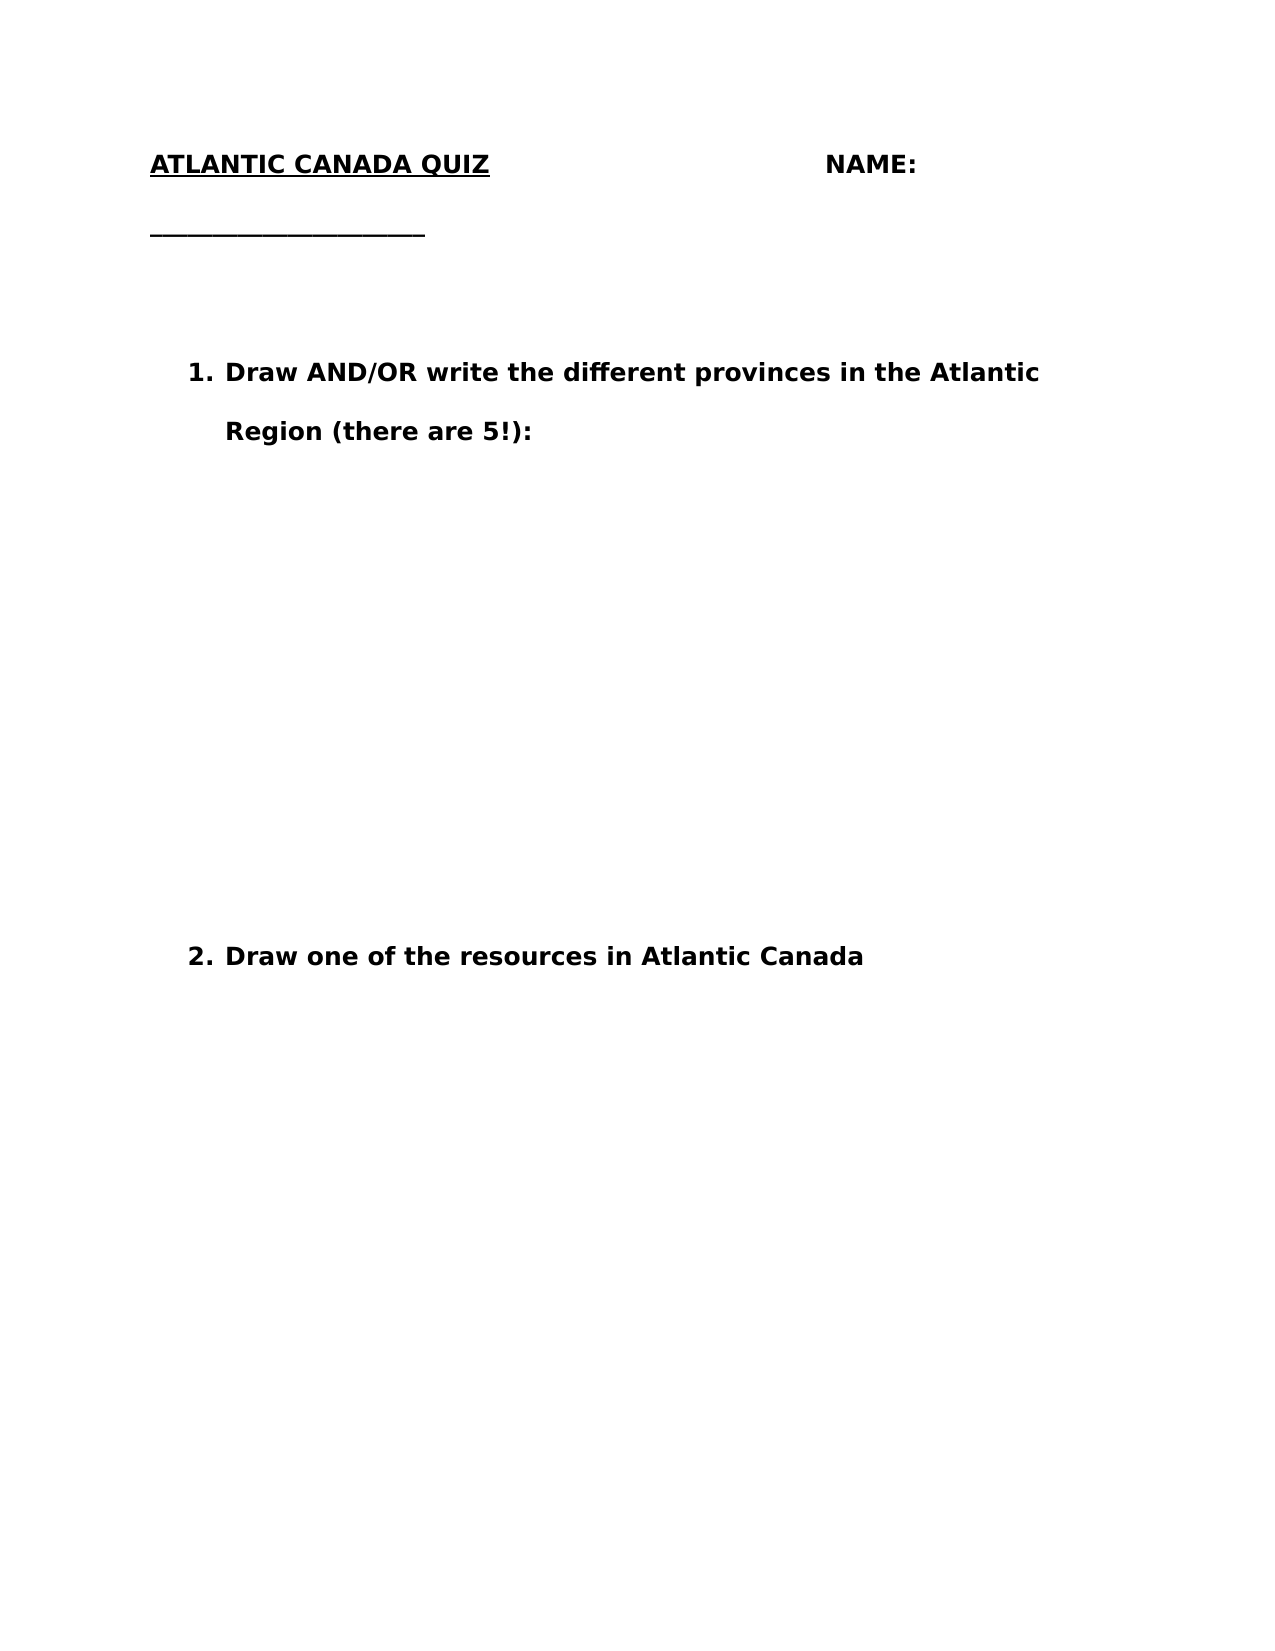 Simplified Atlantic Canada Quiz Resource Preview